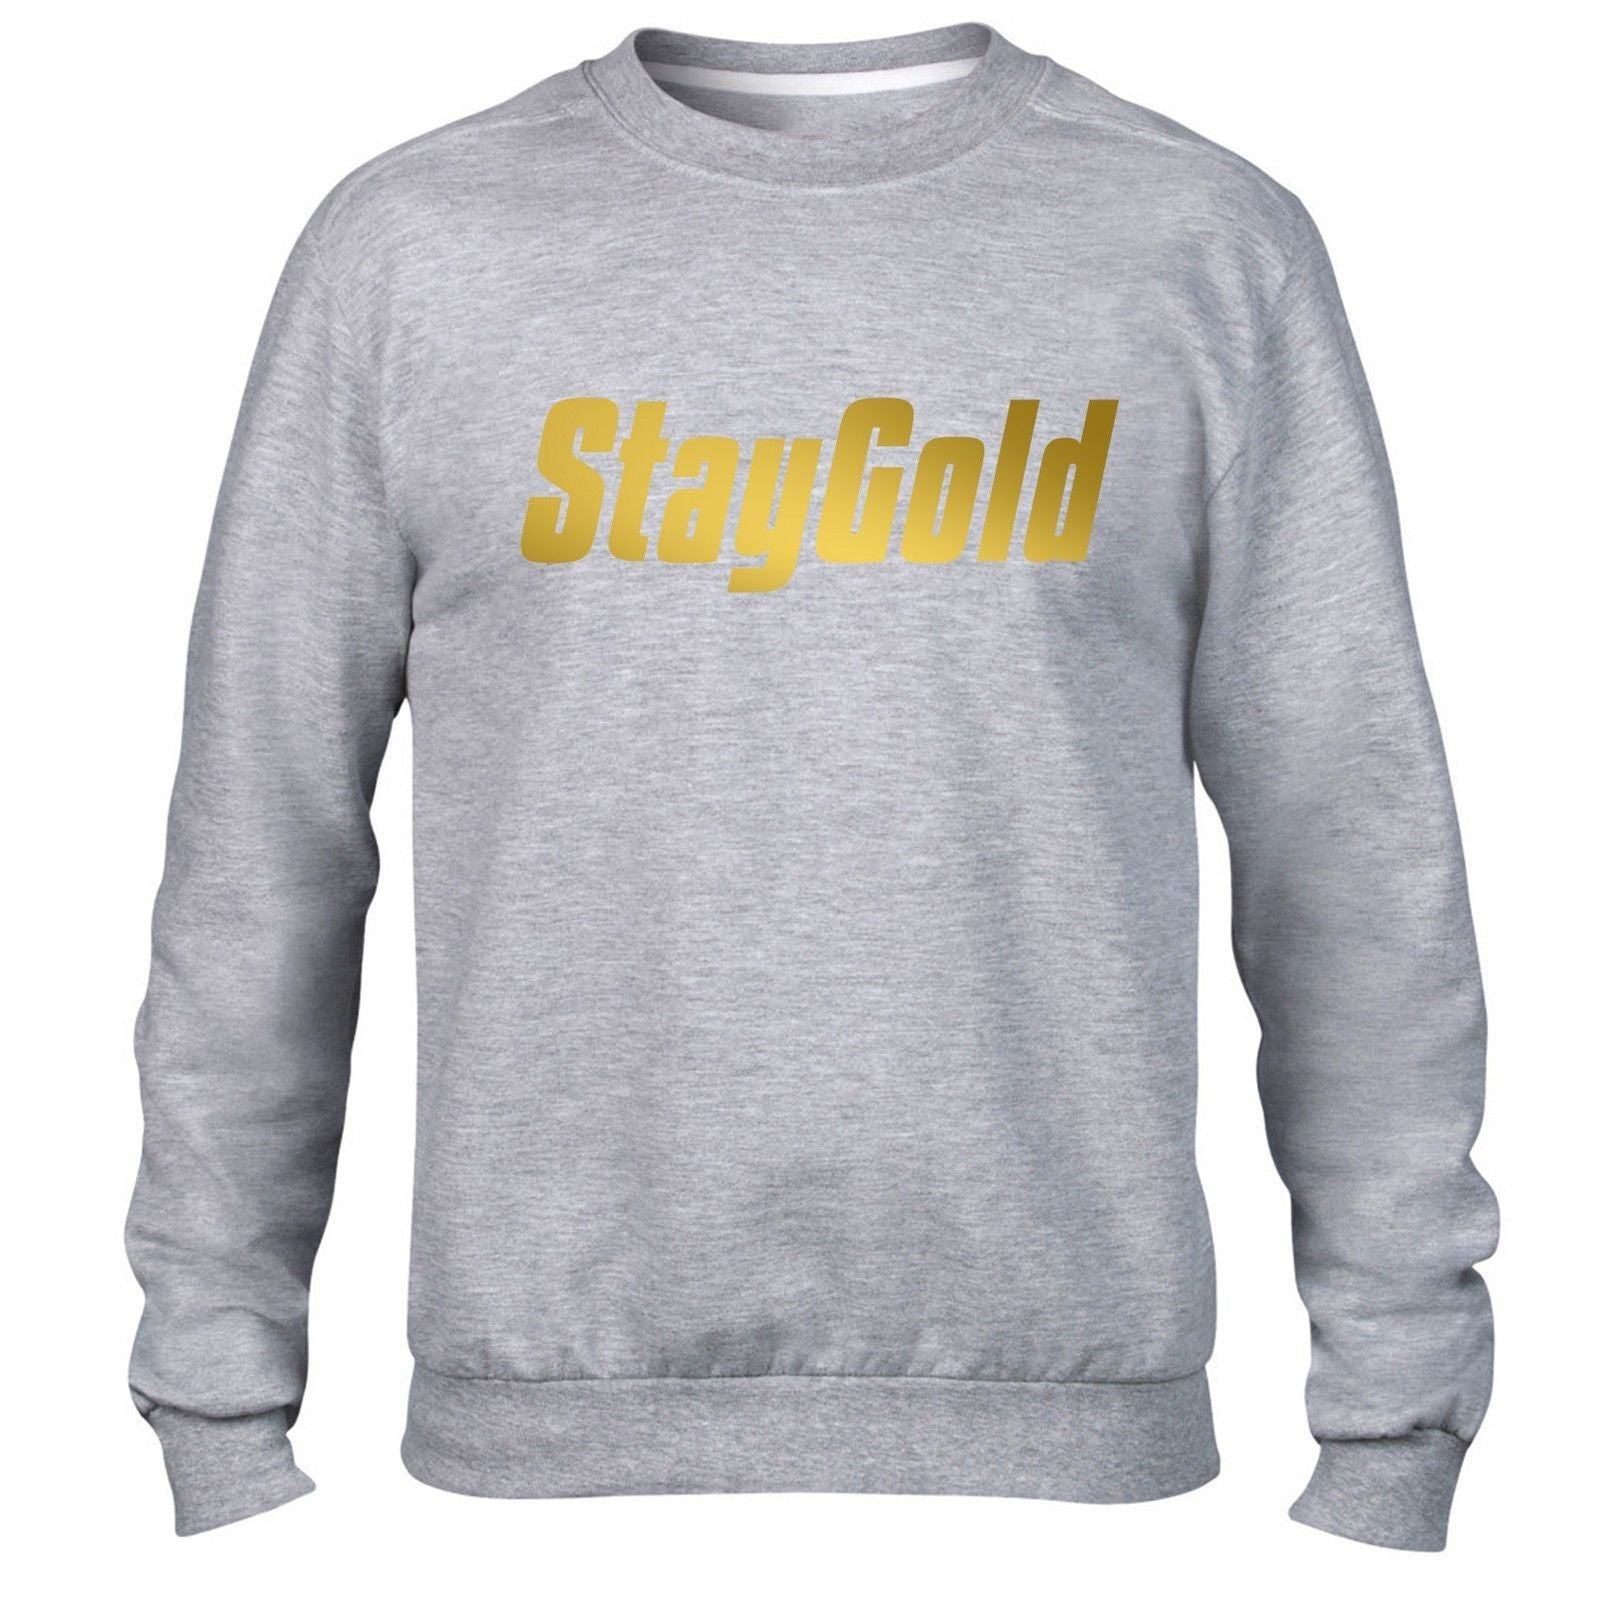 Stay Gold Hipster Swag Hoody GOLD PRINT Mens Hoodie Womens Dope Jumper Top